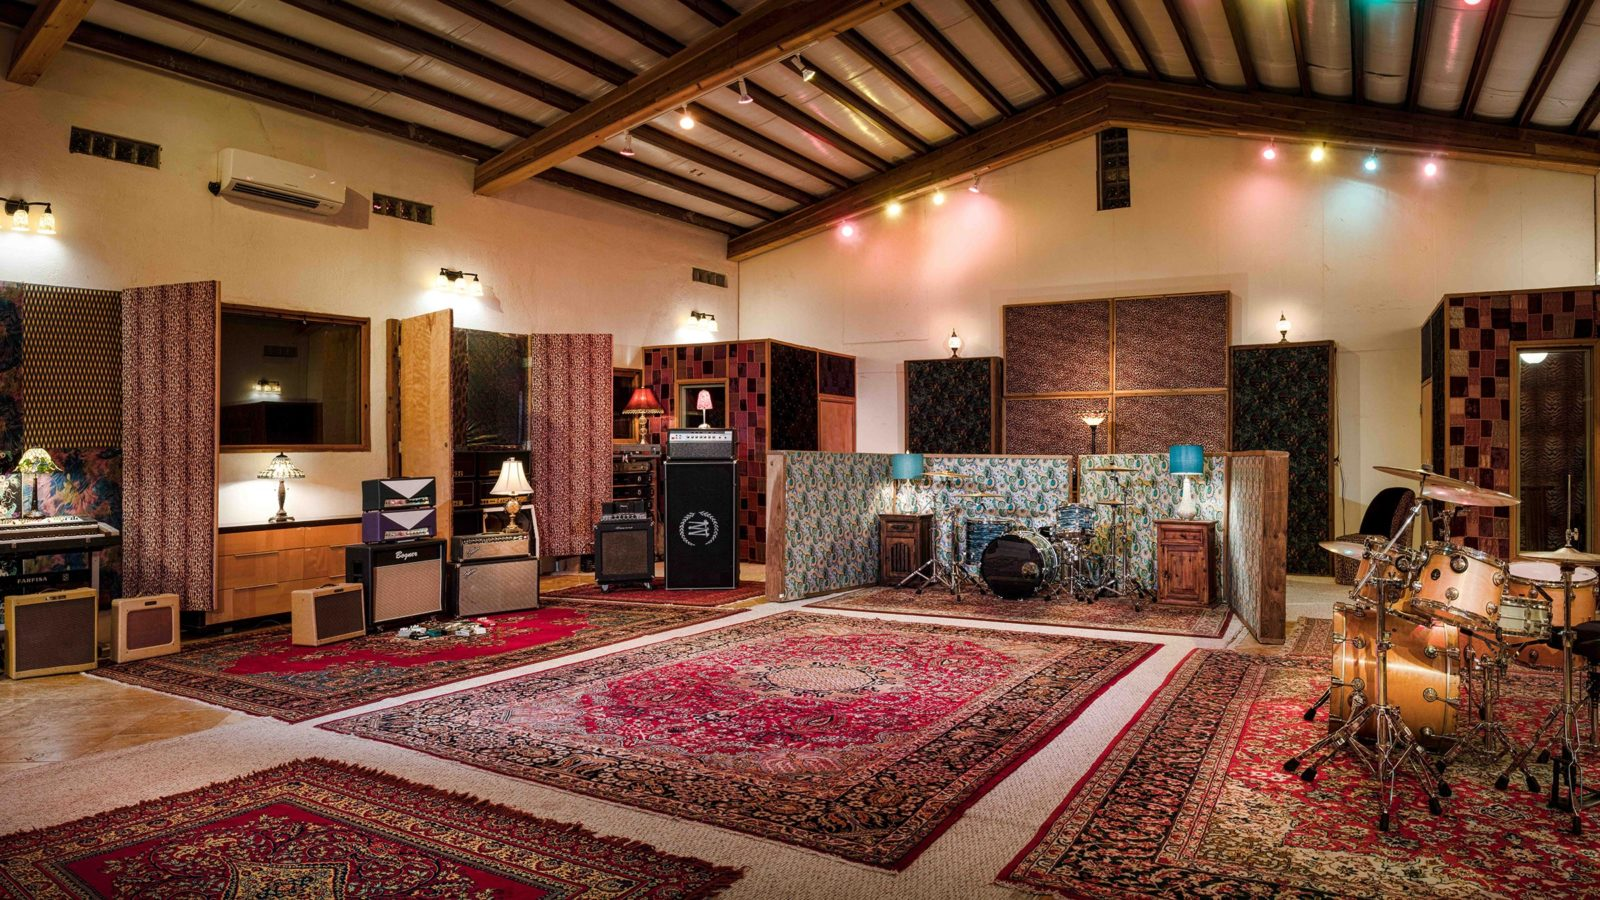 Studio Neve - Tracking Room from right